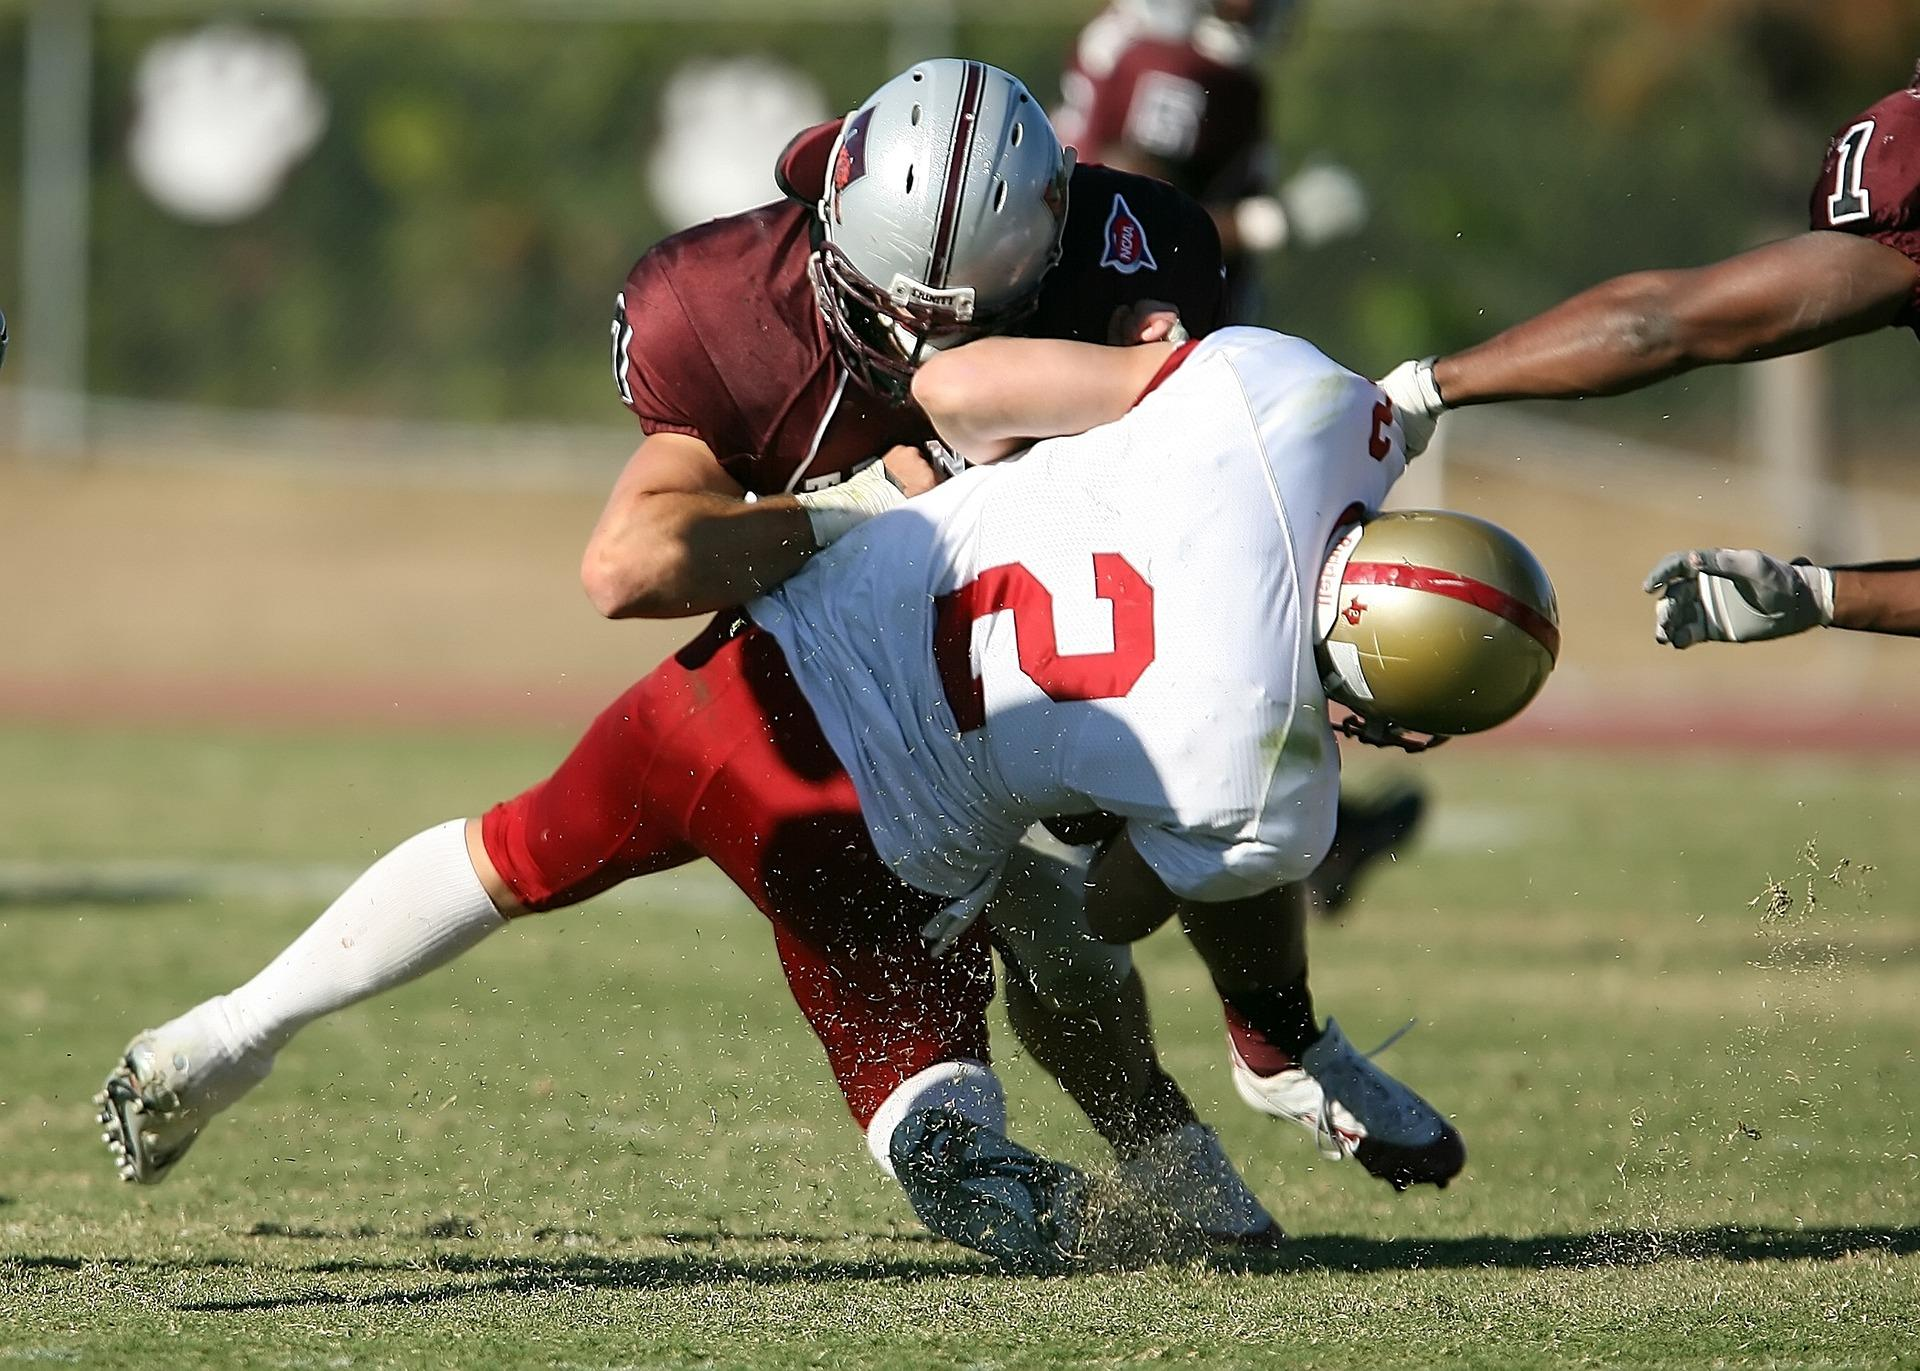 Youth Tackle Football Participation >> Duerson Act Would Ban Tackle Football For Illinois Kids Under Age